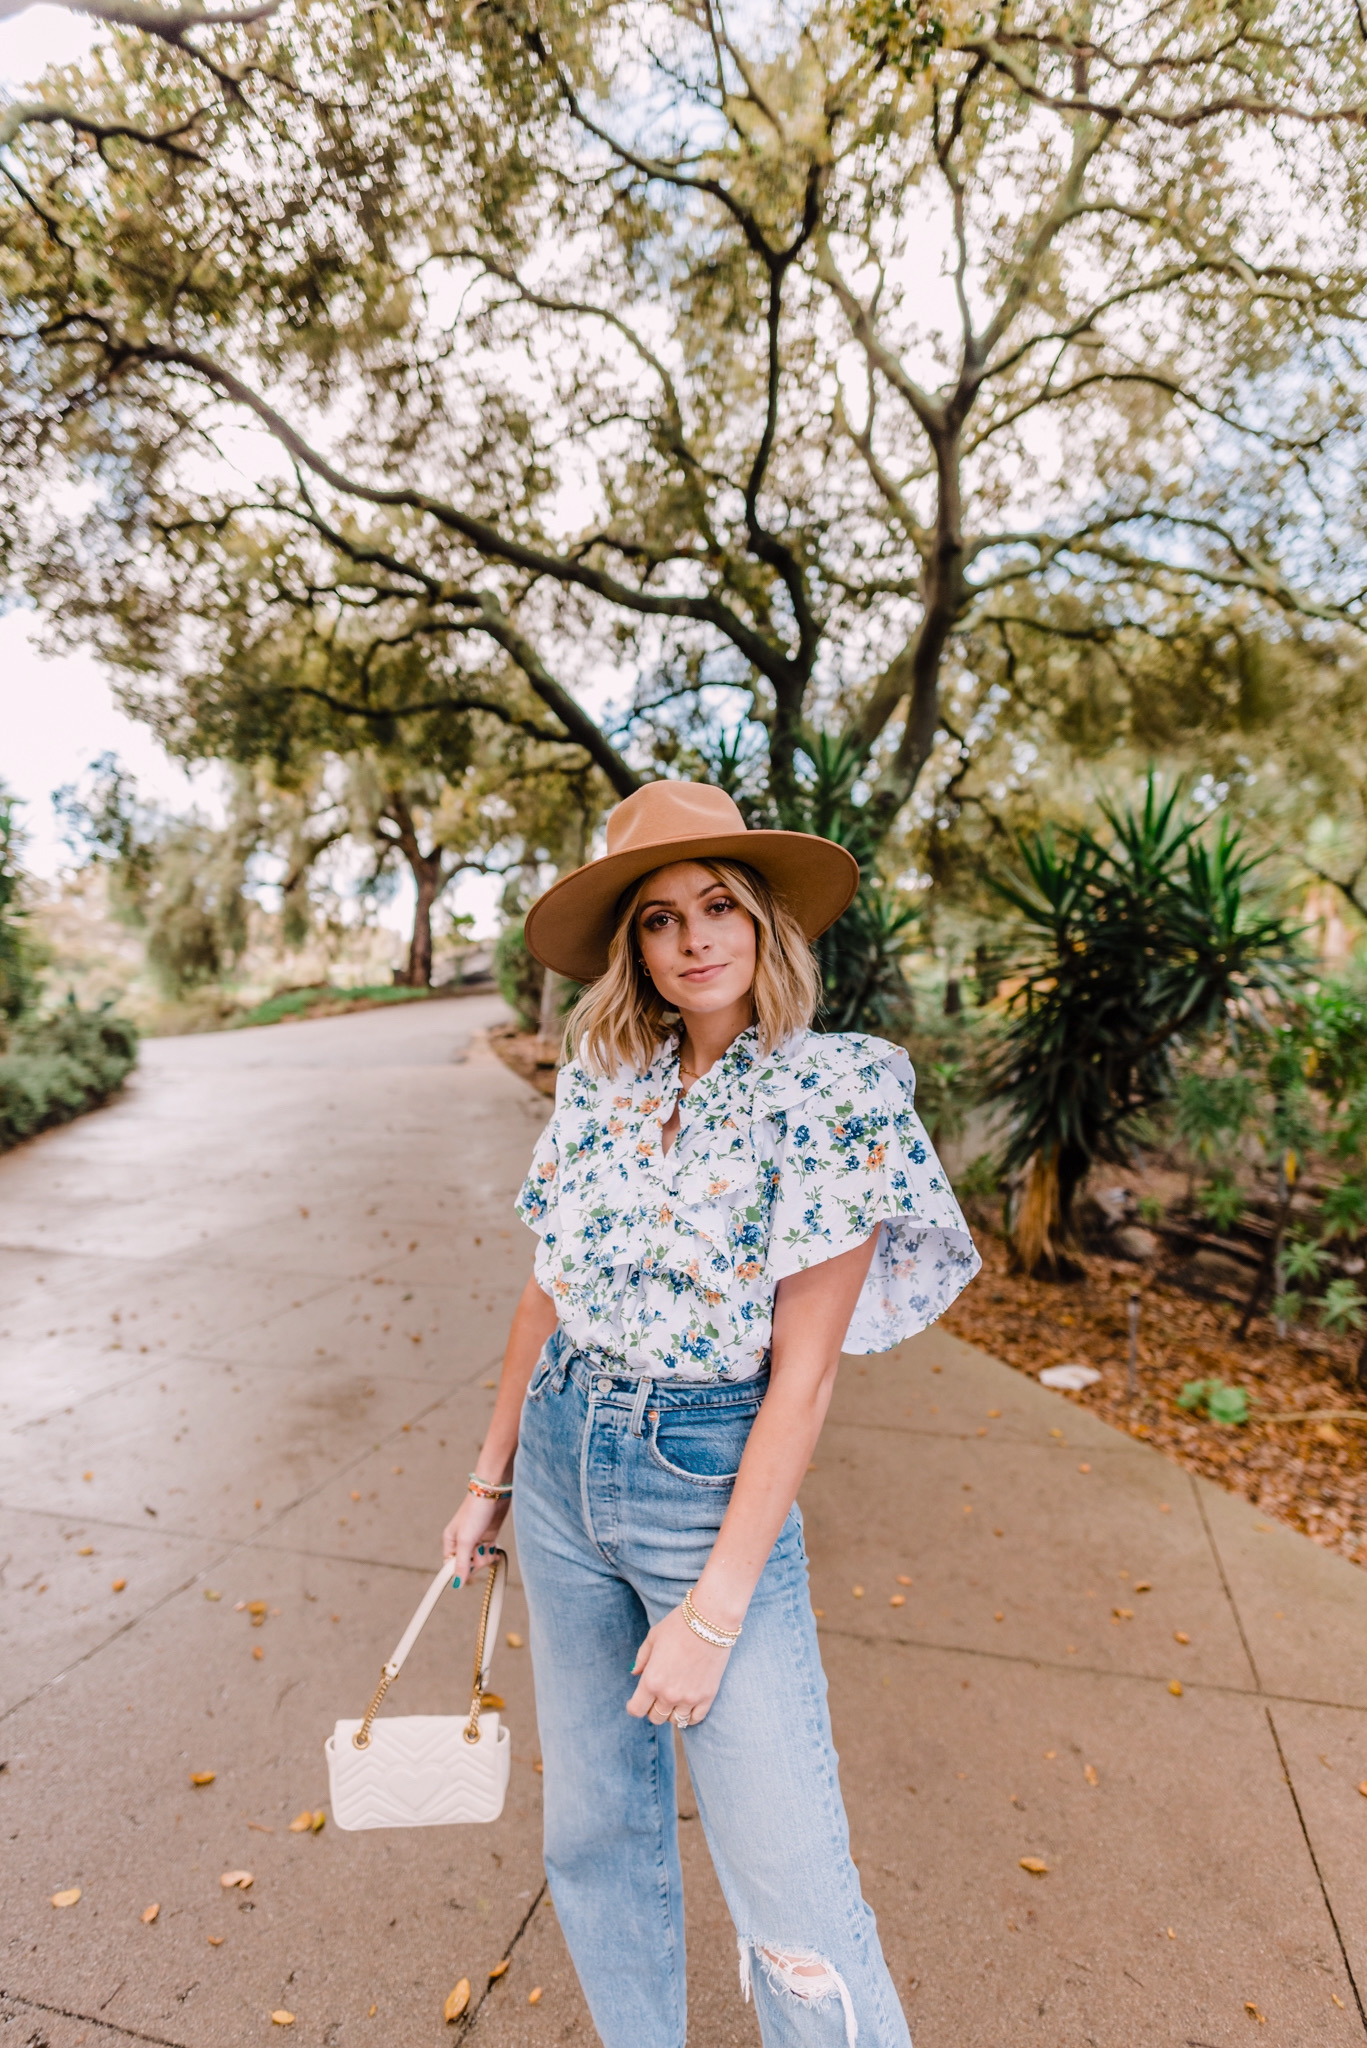 Nordstrom Anniversary Sale by popular San Diego fashion blog, Navy Grace: image of a woman standing outside and wearing a floral top, brown fedora hat, and high waist distressed denim while holding a Gucci purse.